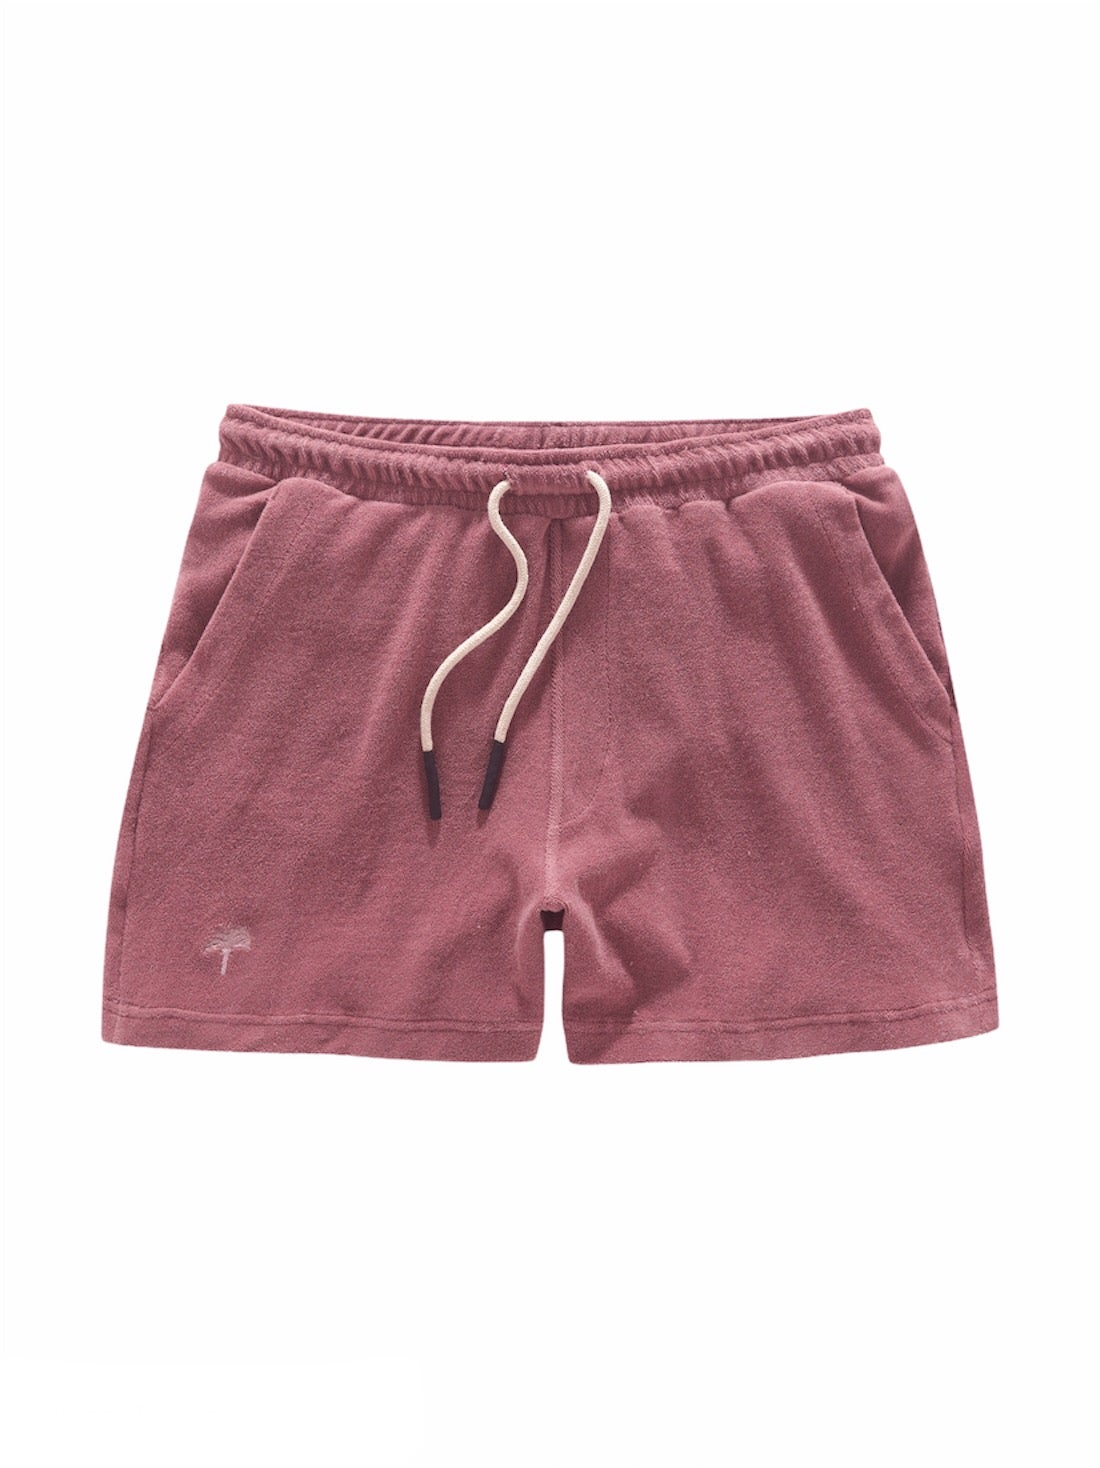 Image of OAS COMPANY Dusty Plum Terry Shorts